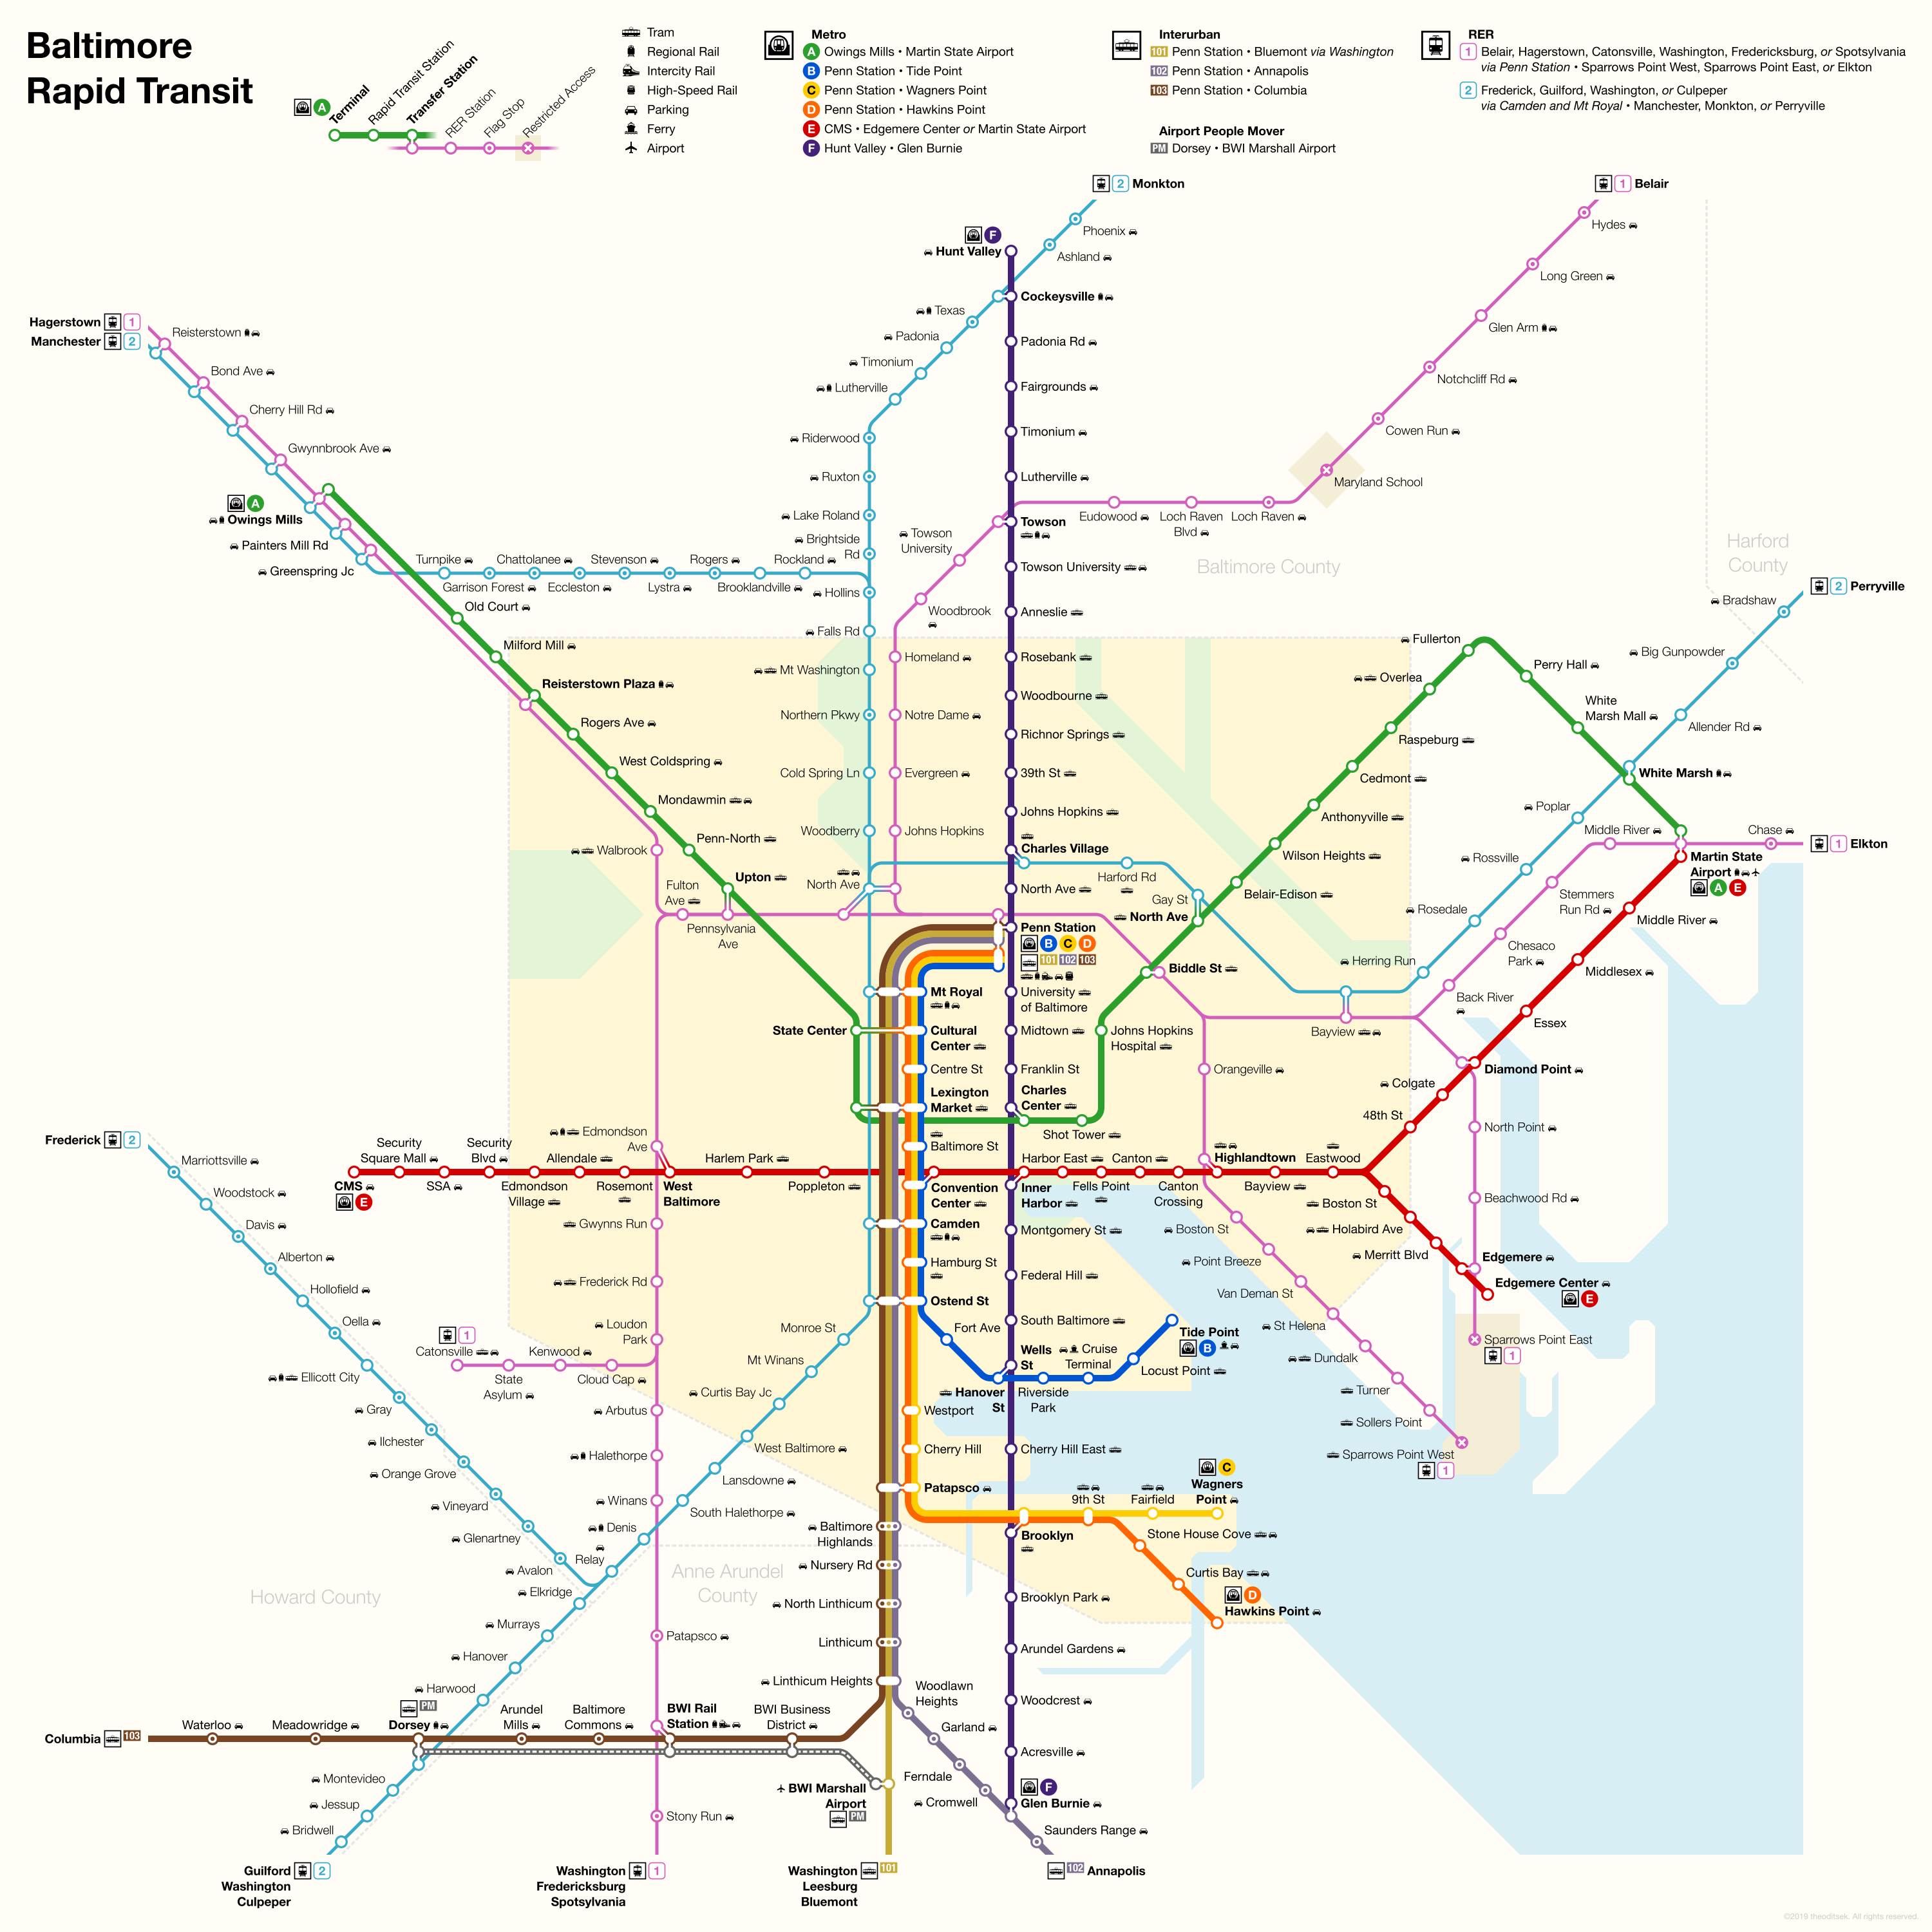 San Diago Subway Map.Theodore Ditsek It Sounded So Much Better In My Head